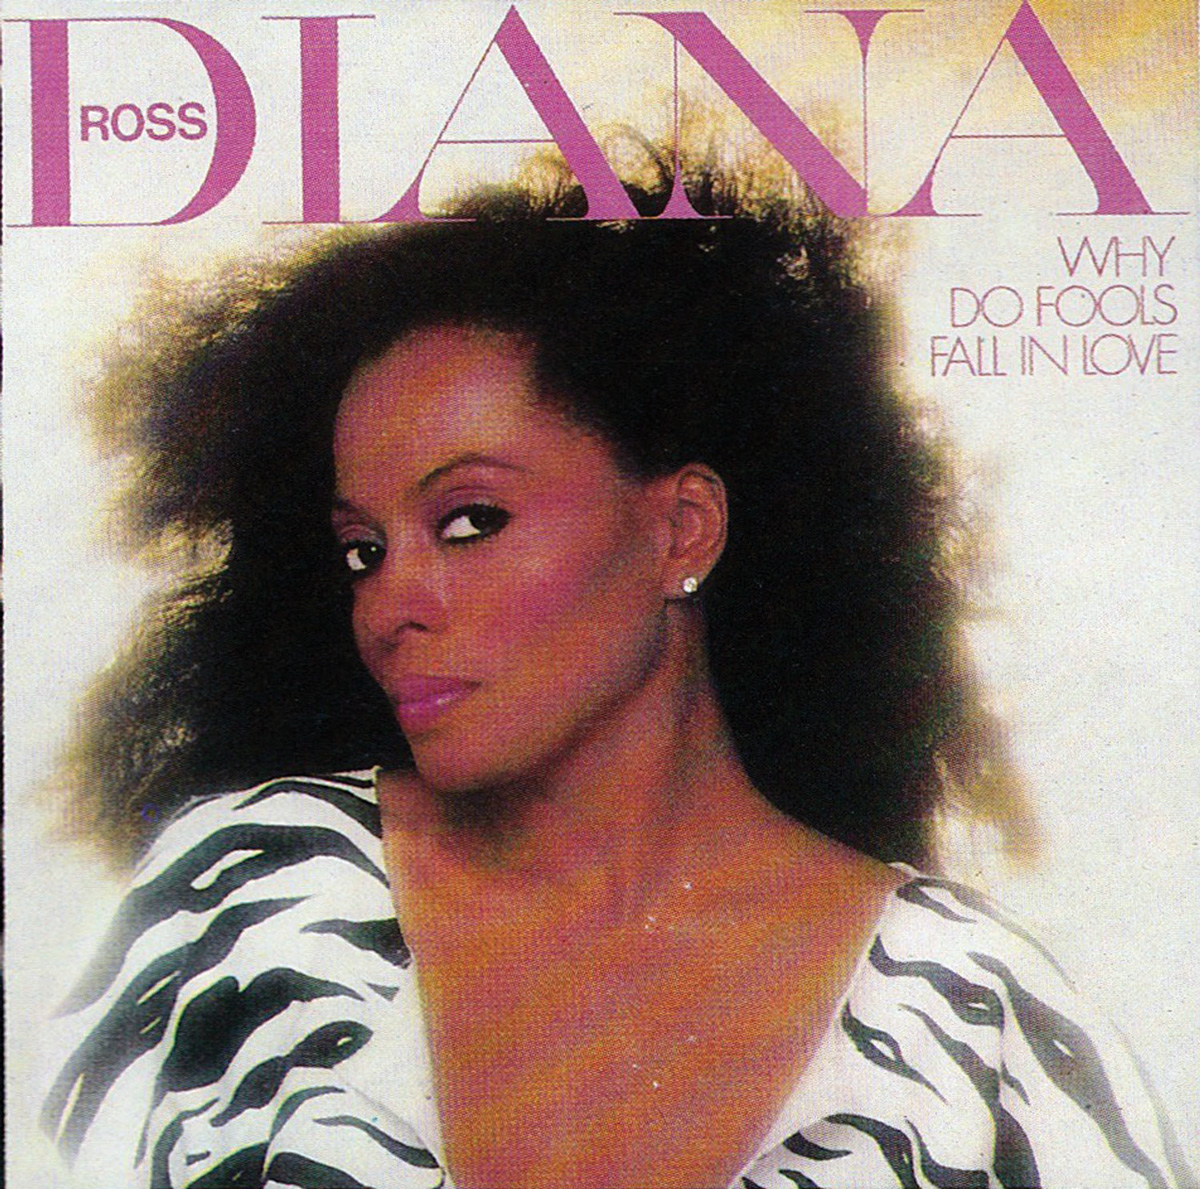 Record cover of Diana Ross's Why Do Fools Fall in Love, with the singer in a black-and-white blouse posed before glowing light